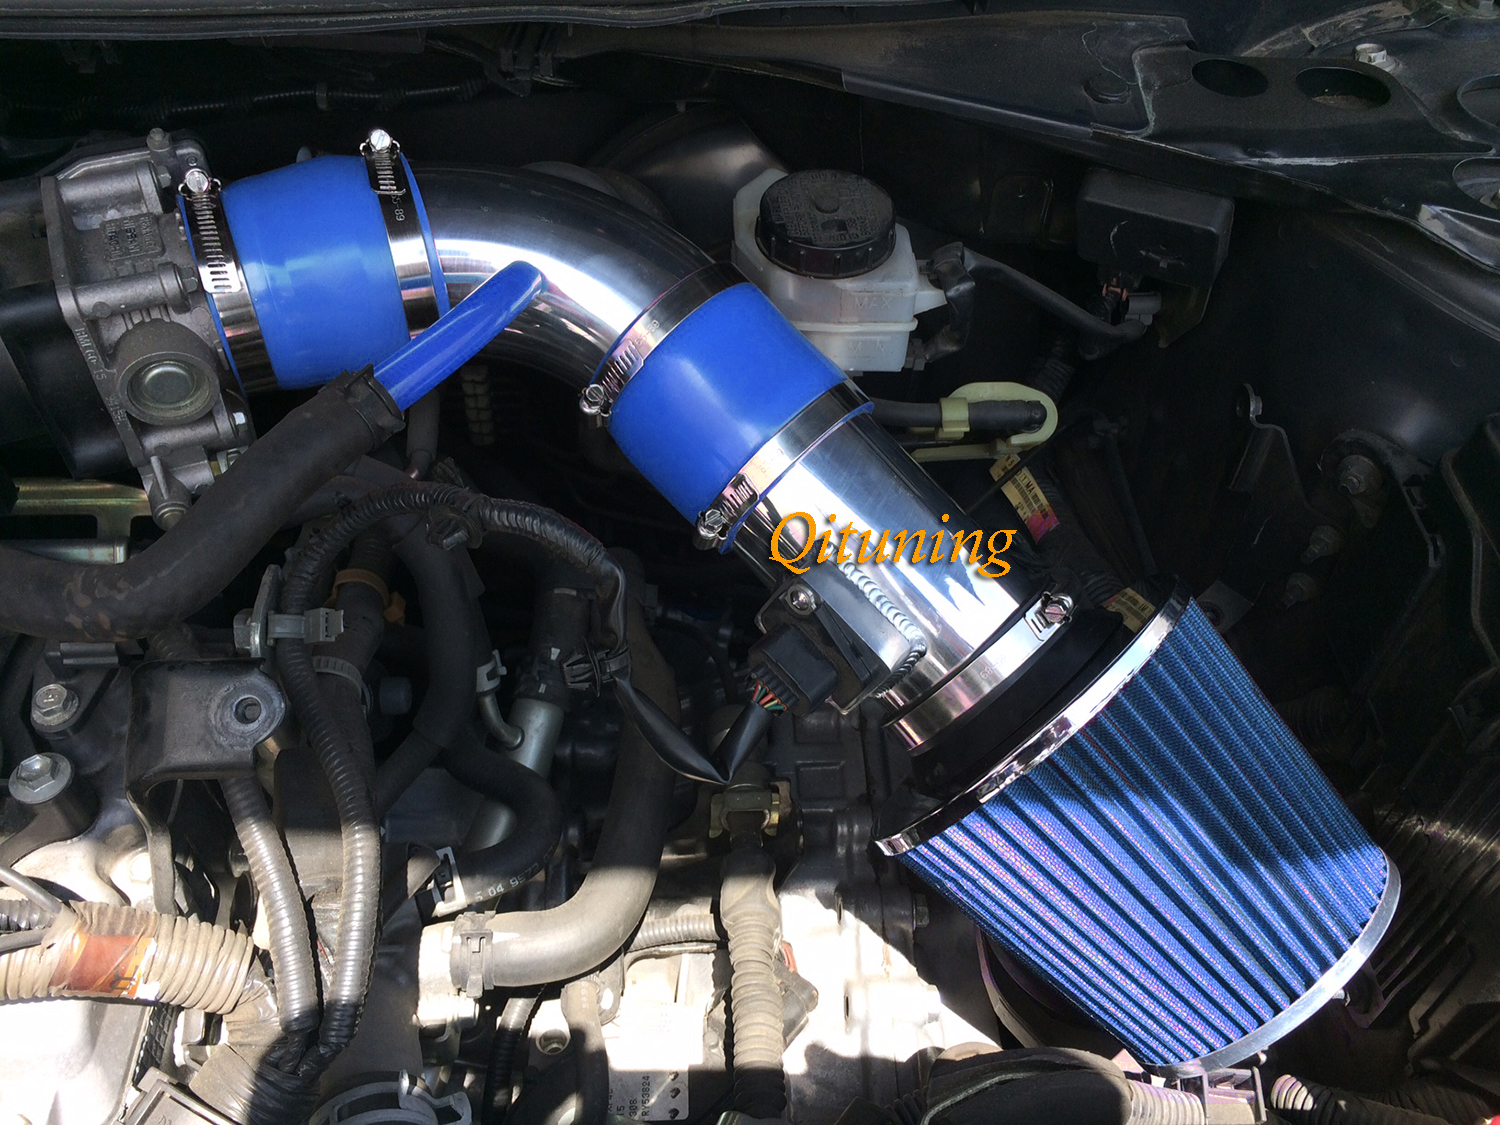 Blue 2PC Air Intake System Kit Filter For 2007-2012 Nissan Altima 2.5L L4